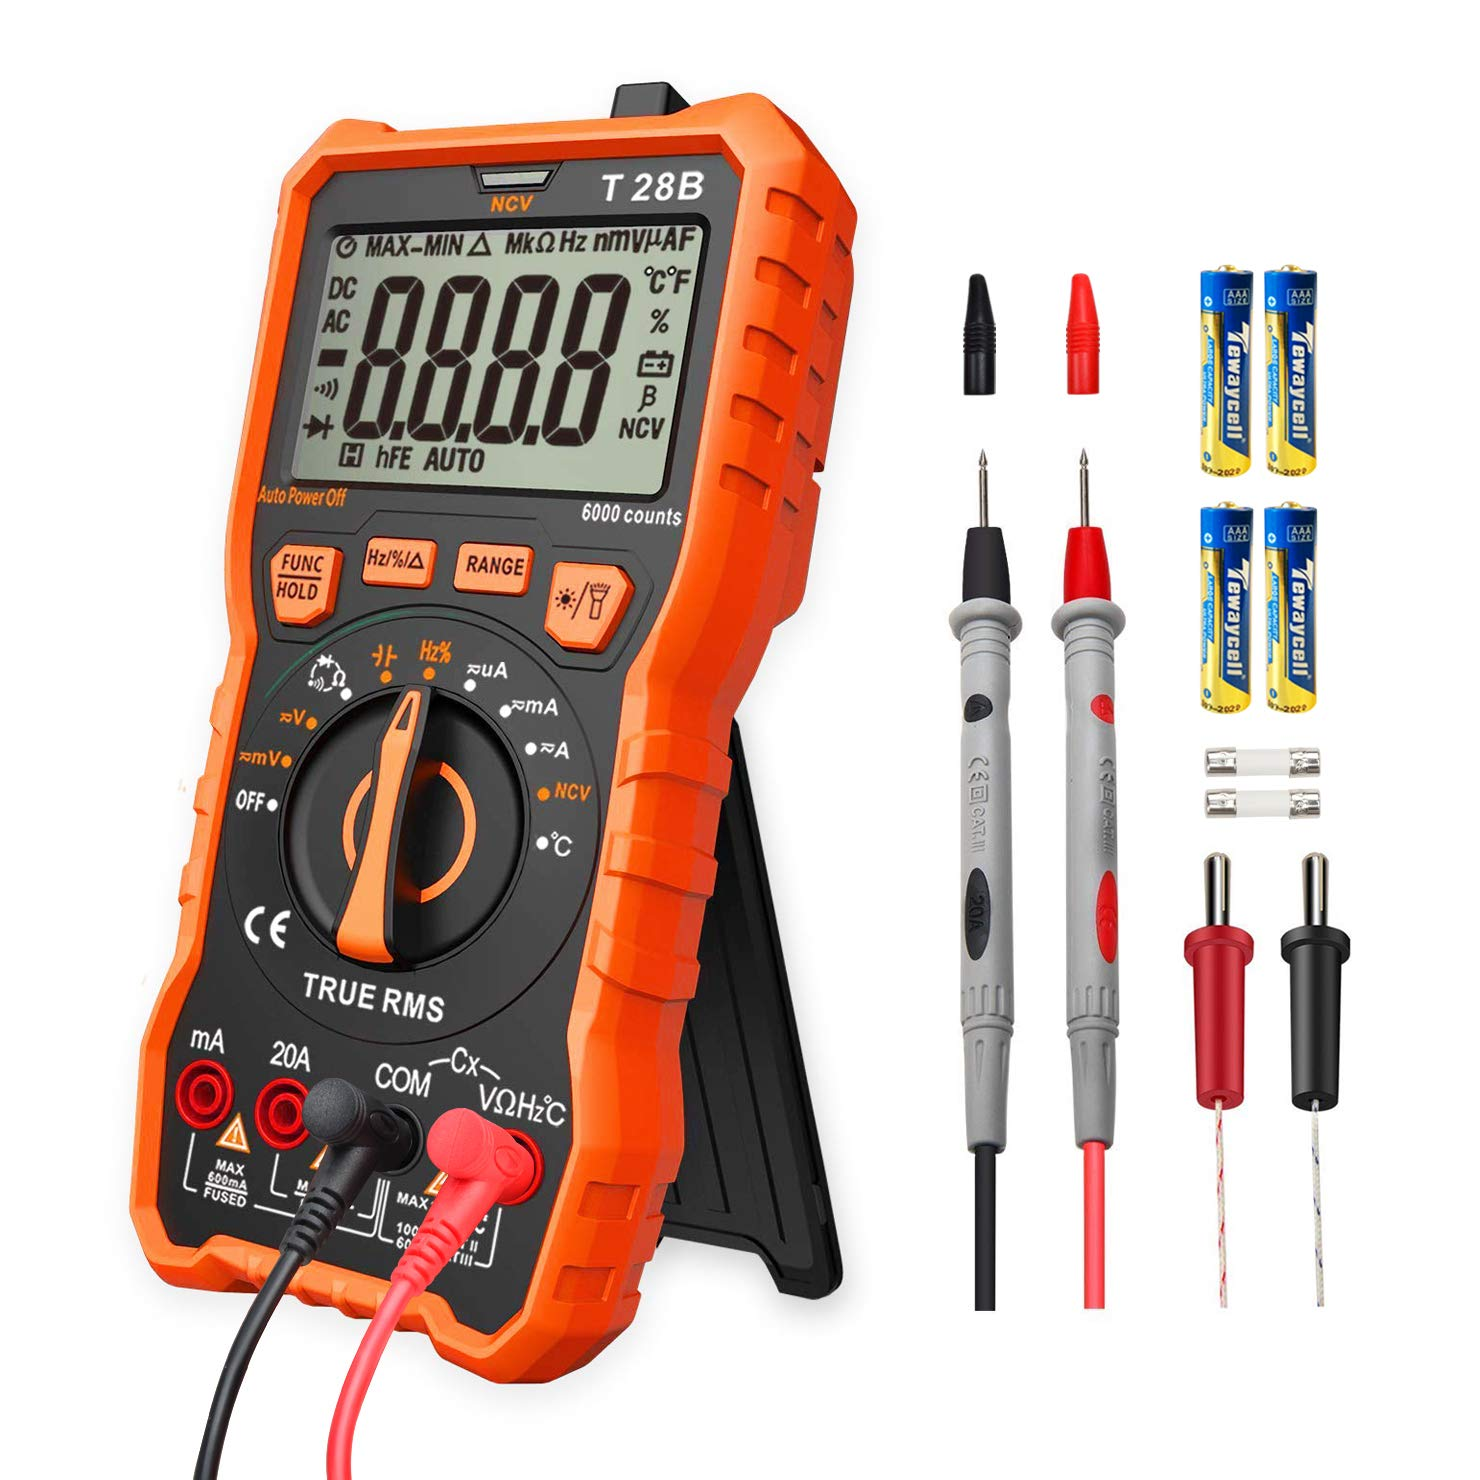 Digital Multimeter, 6000 Counts Electrical Tester AC/DC Voltage Current Detector, NCV, Resistance, Capacitance, Diode Electronic, Duty Cycle Tester, (Auto Ranging Digital Multimeter)